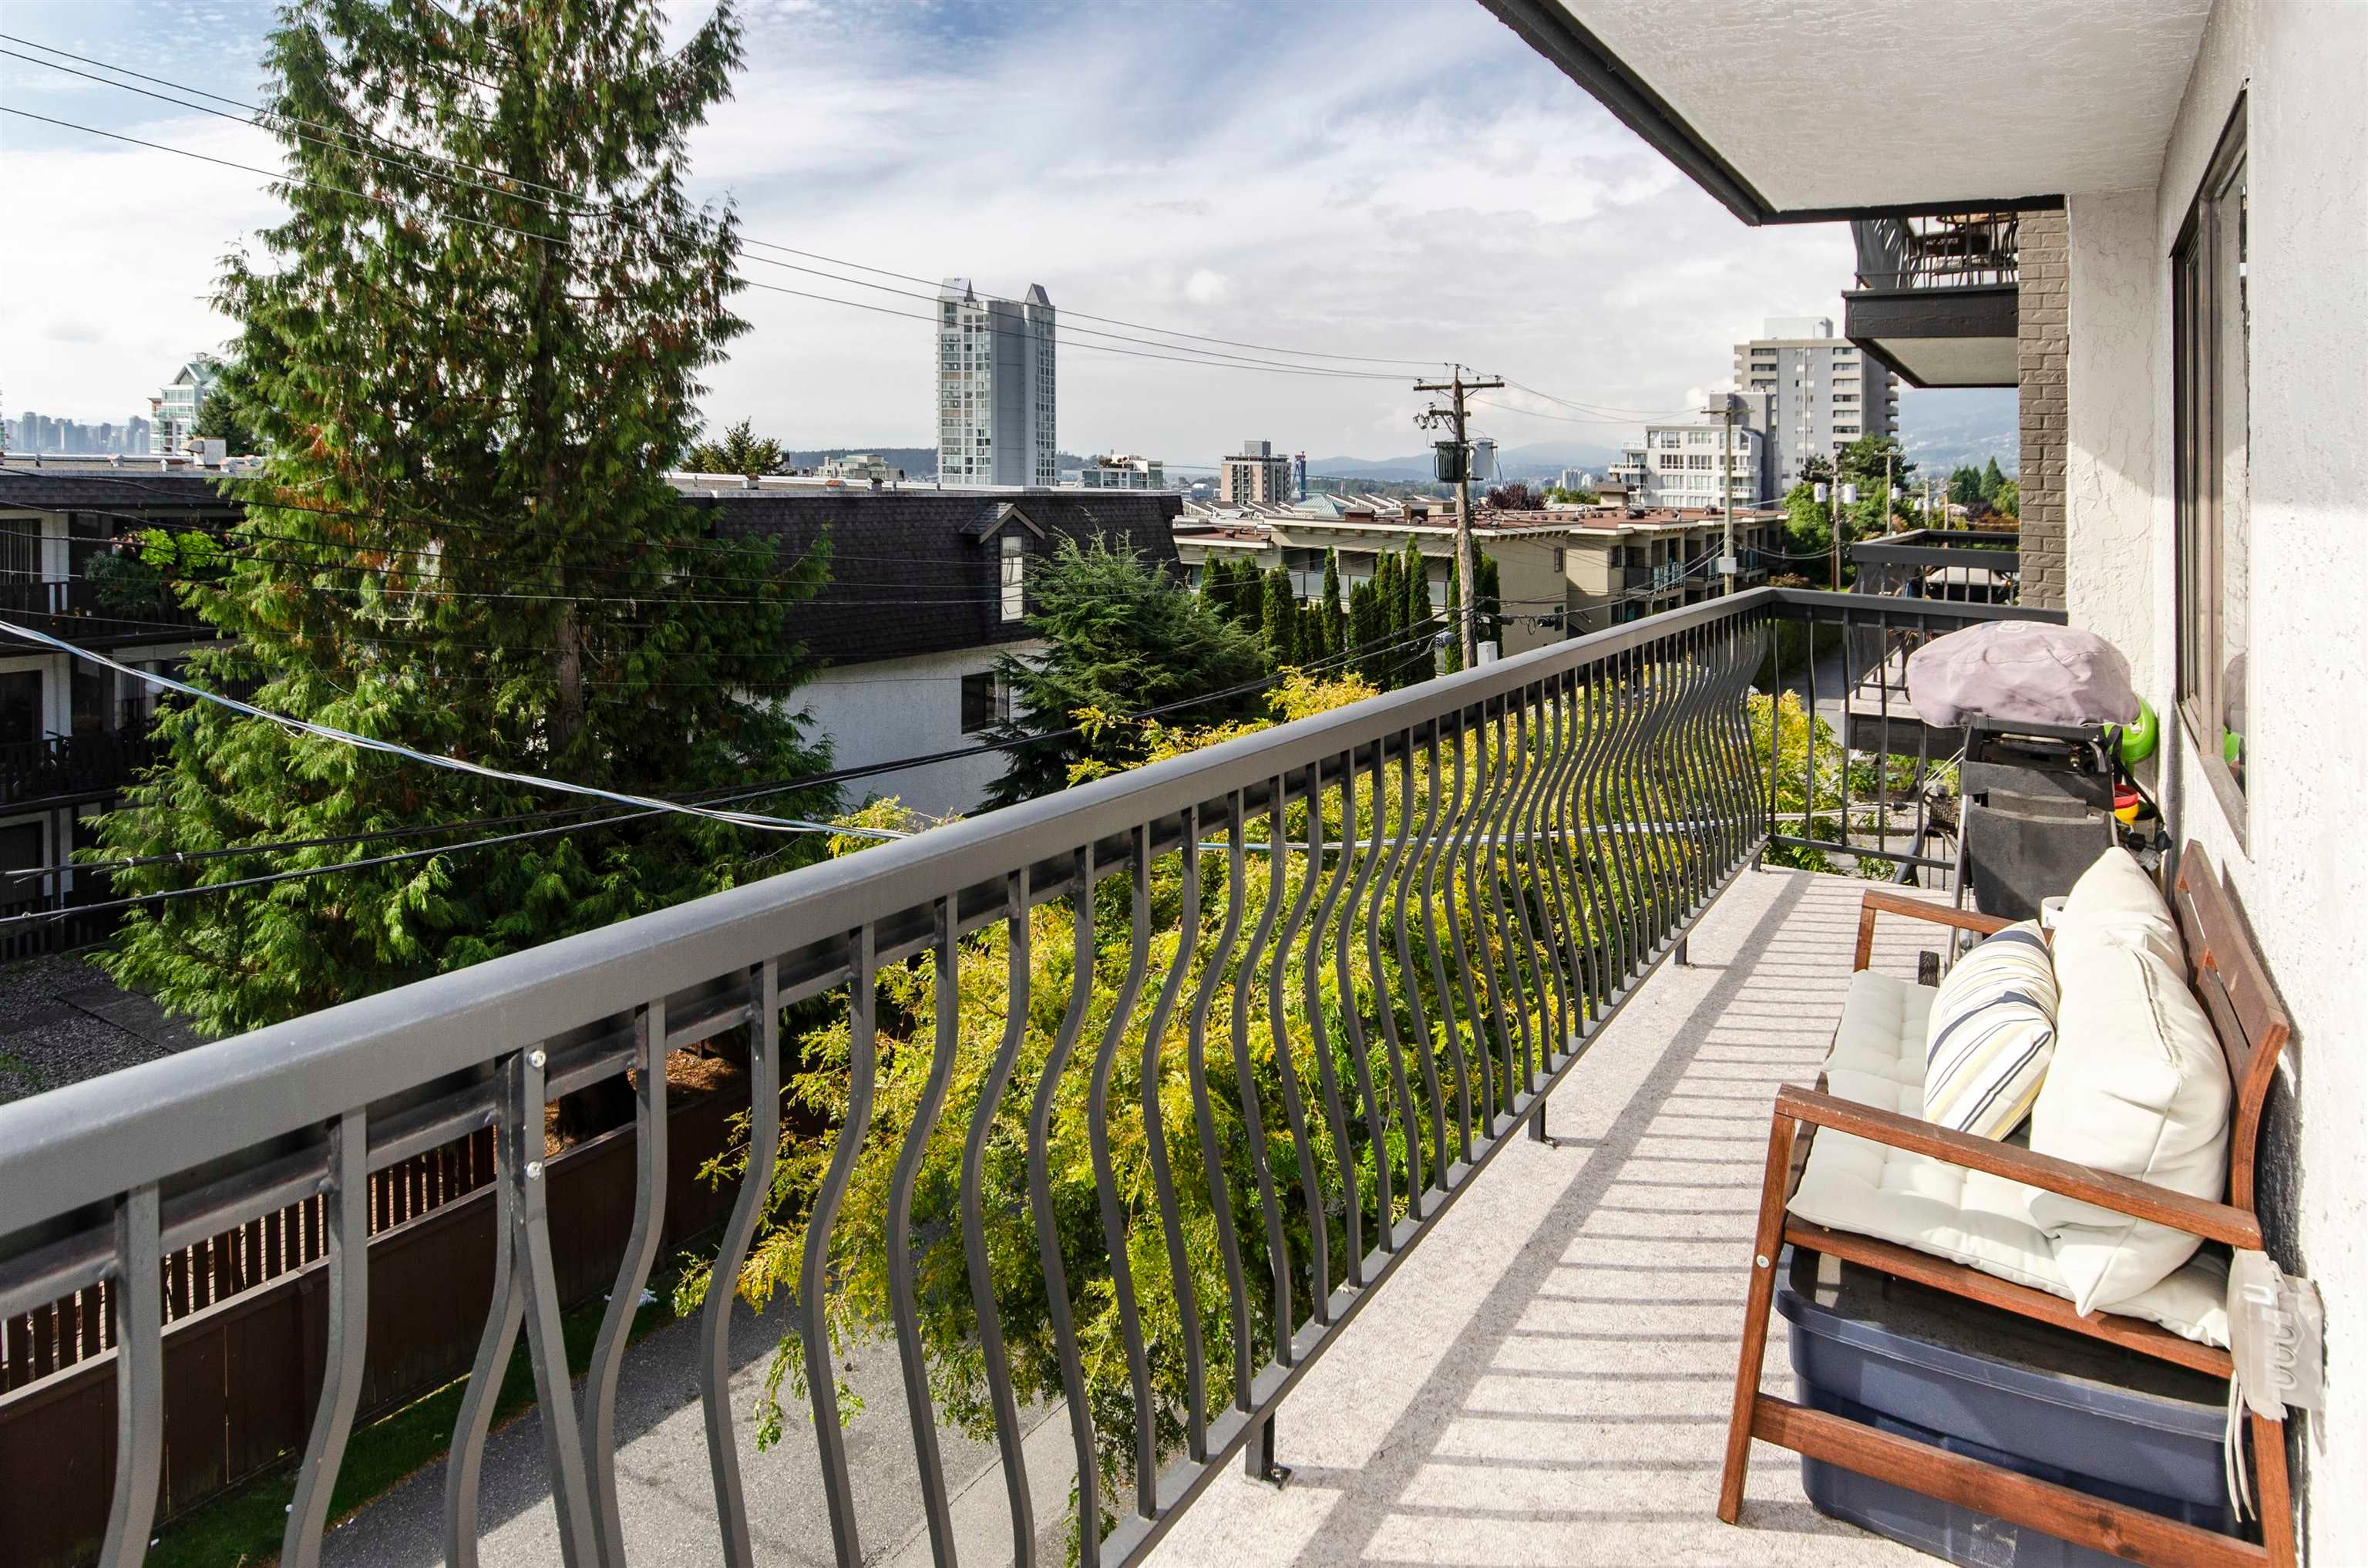 206 175 E 5TH STREET - Lower Lonsdale Apartment/Condo for sale, 2 Bedrooms (R2624759) - #18